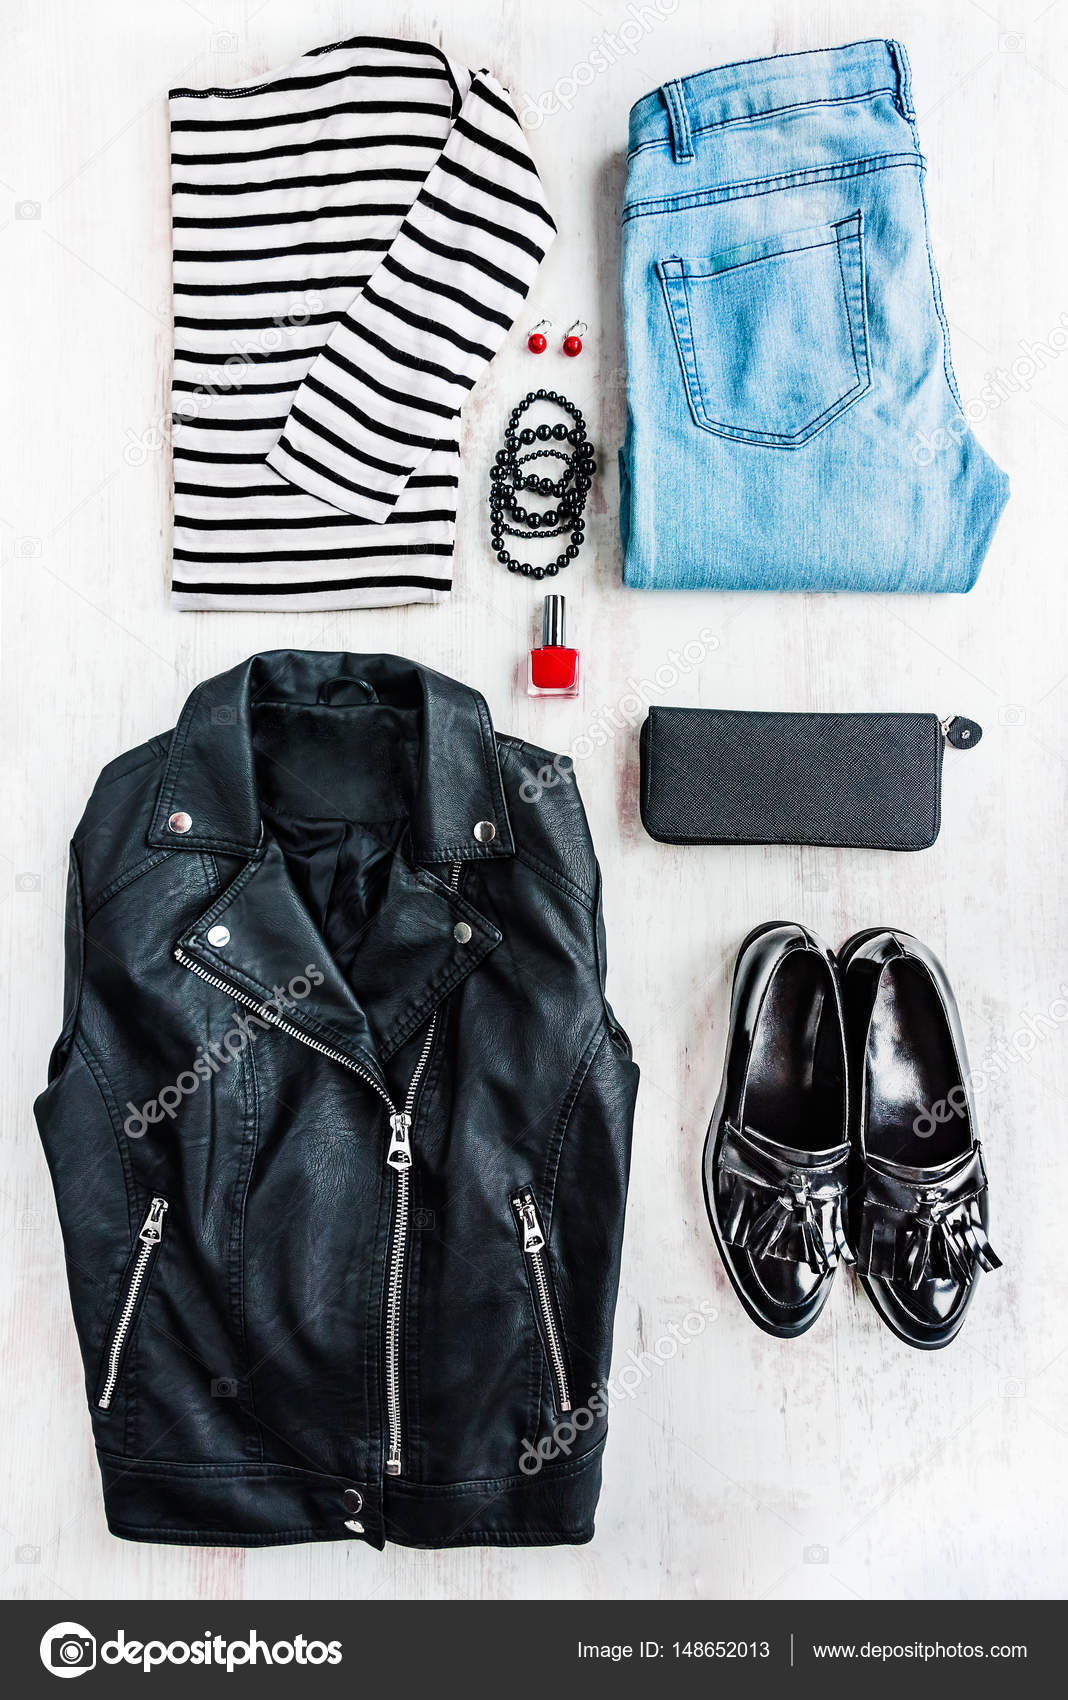 af06a966 Urban style woman collage clothing. Top view of a leather jacket, striped  blouse,